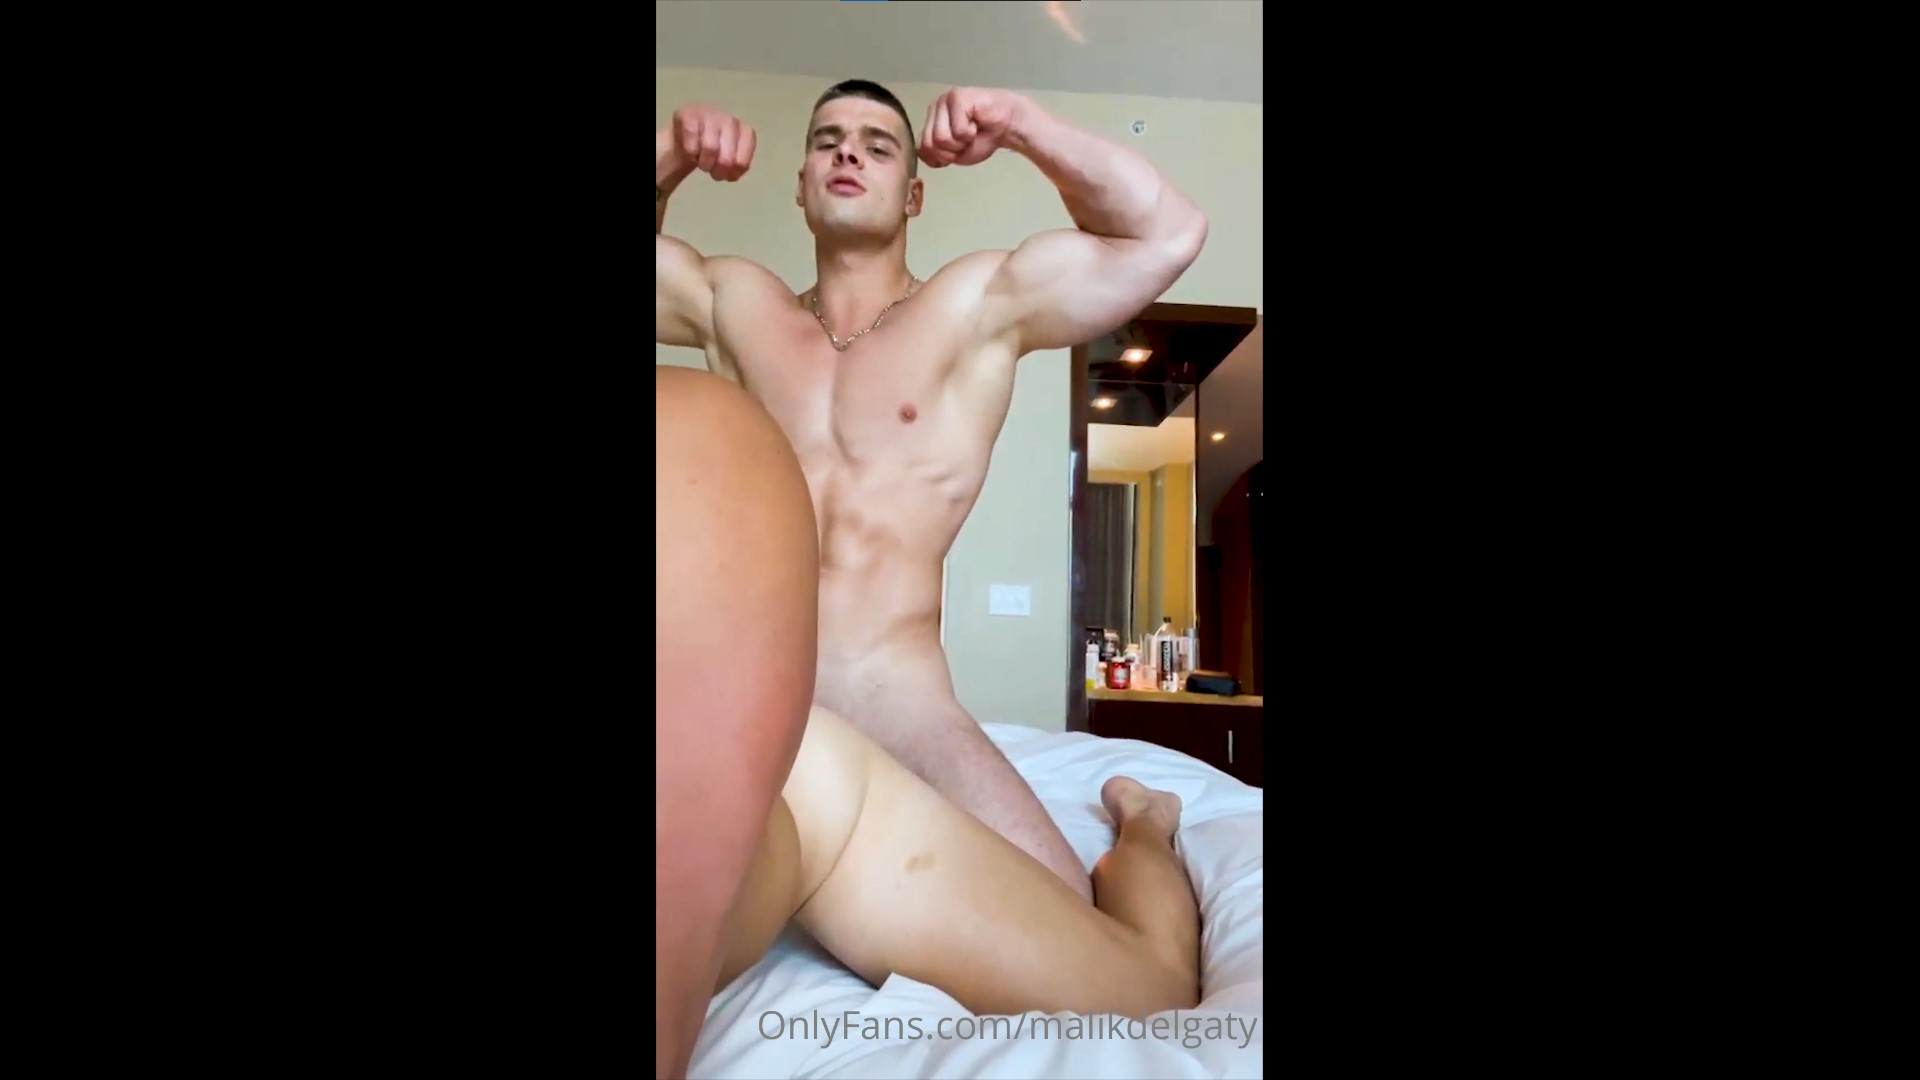 Having a shower and fooling around with a guy till he cums over me - Malik Delgaty